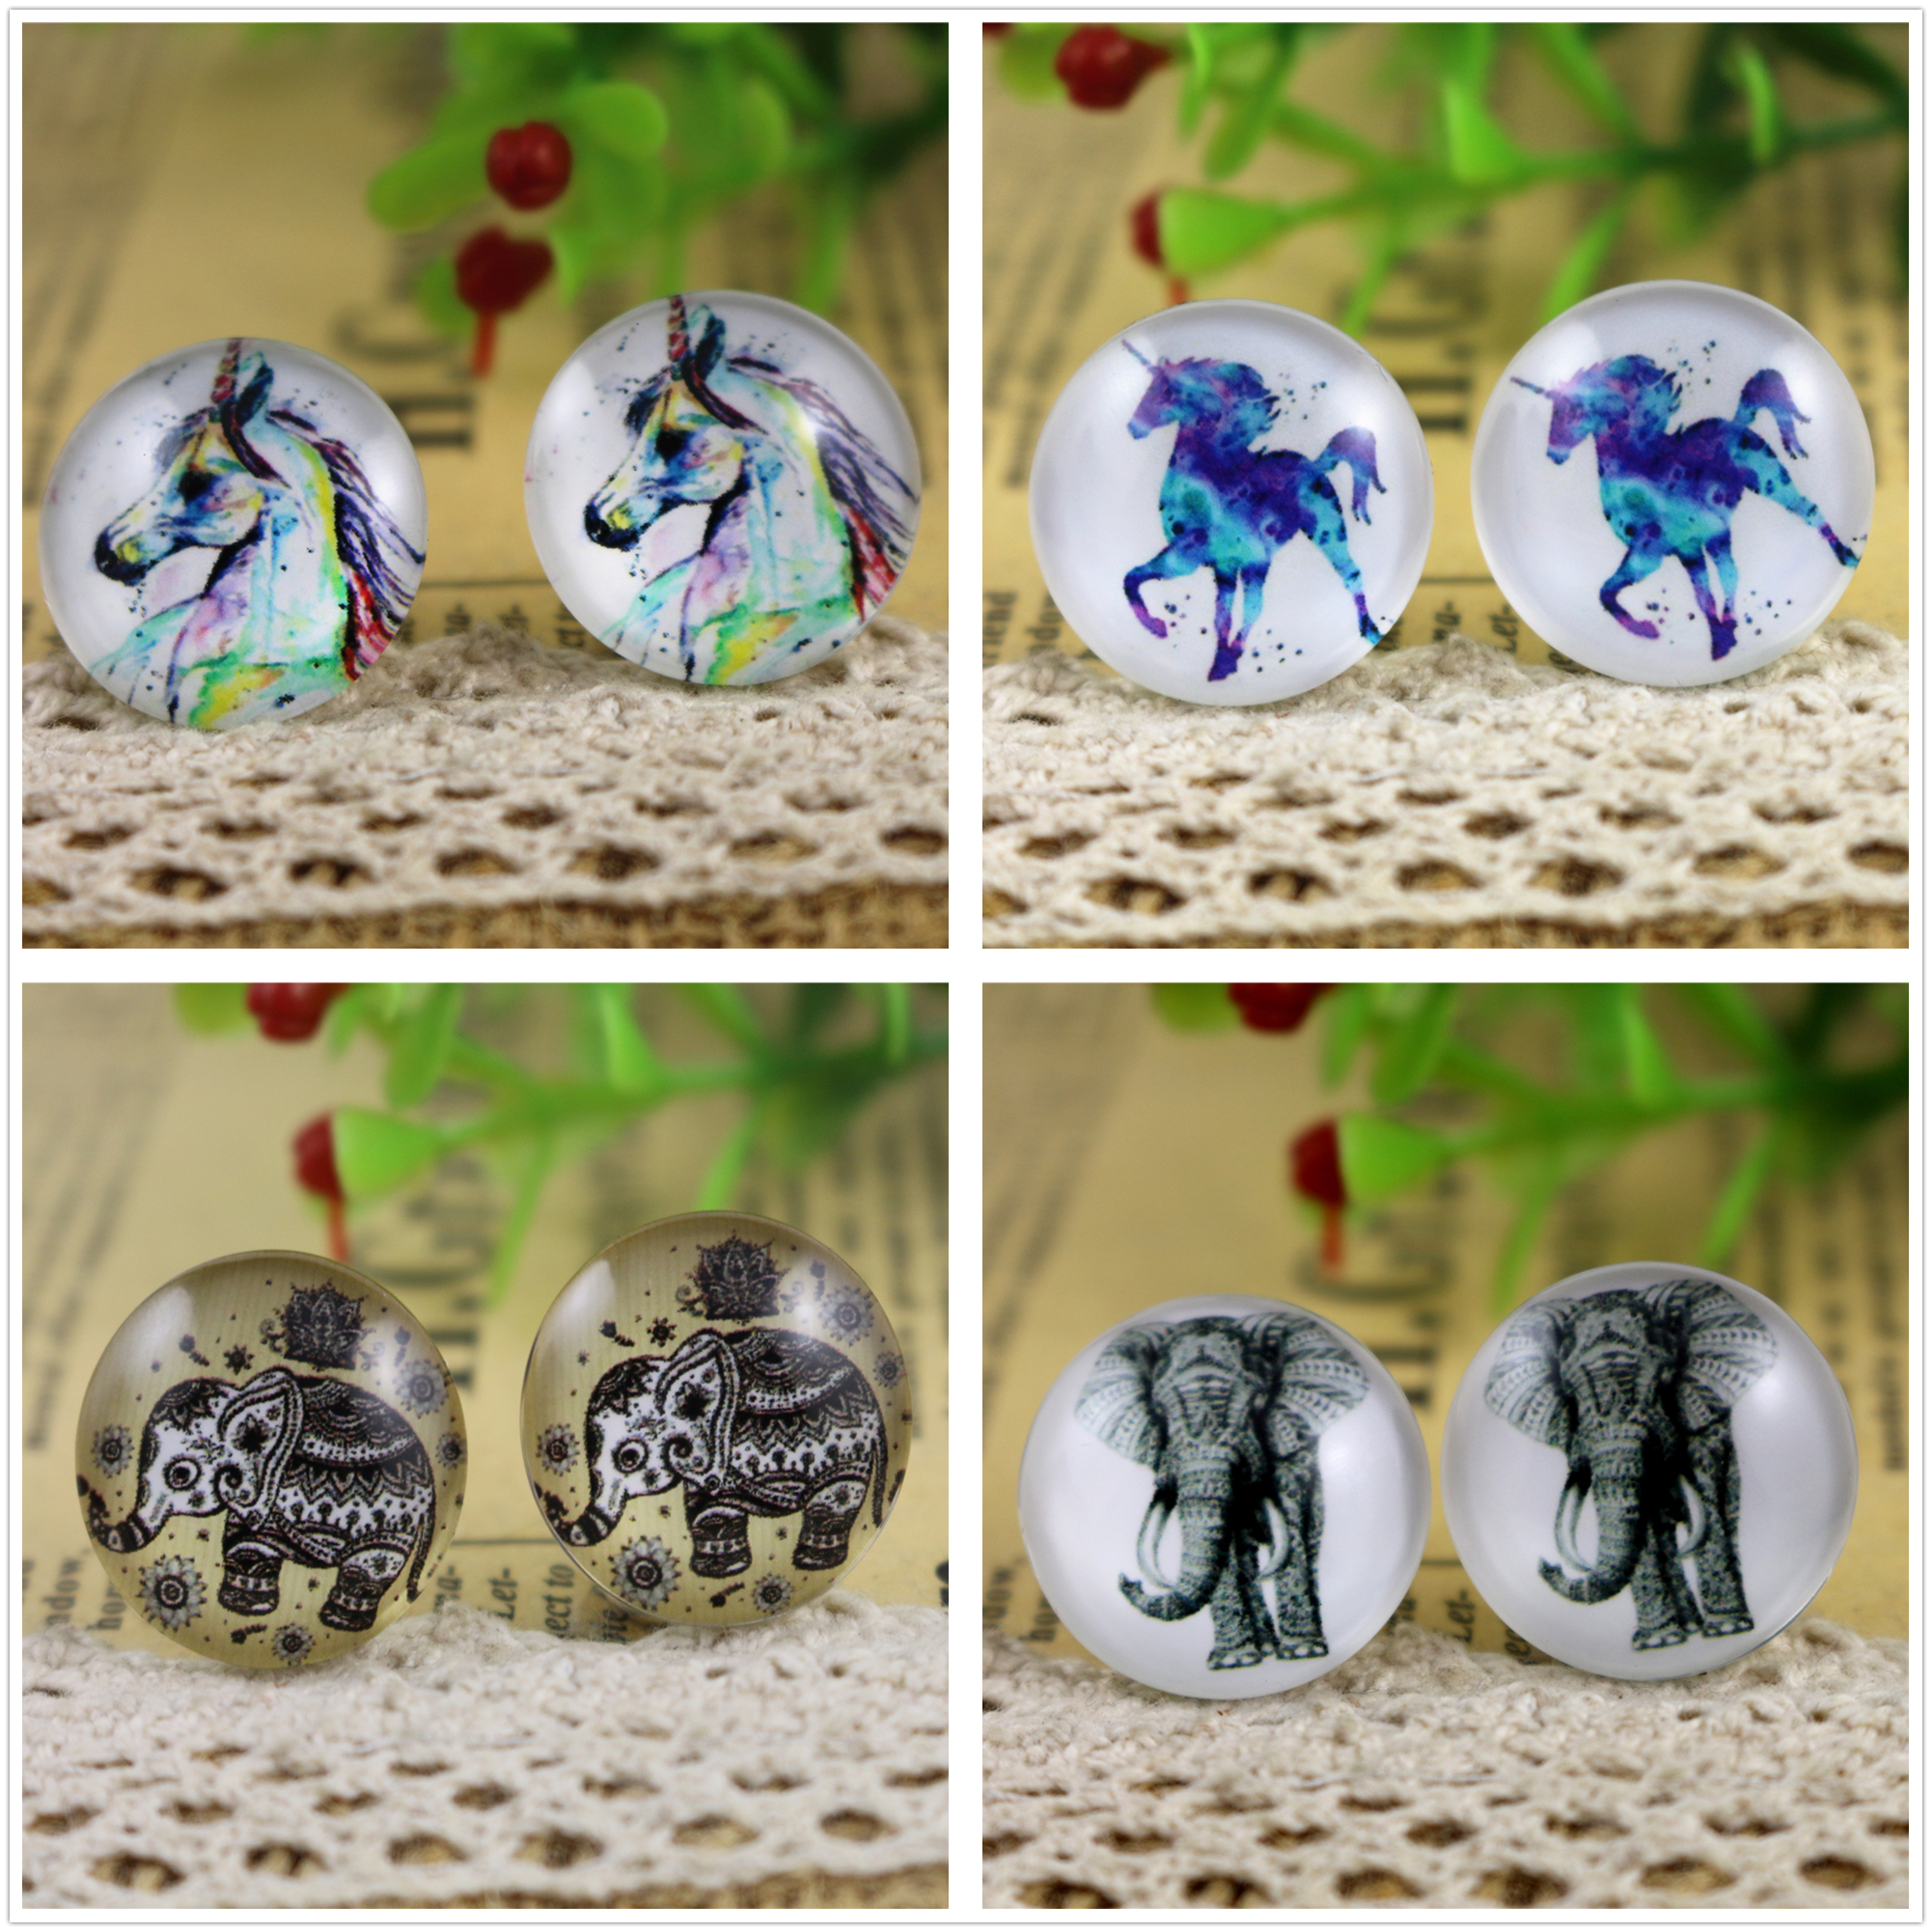 Hot Sale 10pcs 20mm Handmade Horse and elephant Photo Glass Cabochons Pattern Domed Jewelry Accessories SuppliesHot Sale 10pcs 20mm Handmade Horse and elephant Photo Glass Cabochons Pattern Domed Jewelry Accessories Supplies